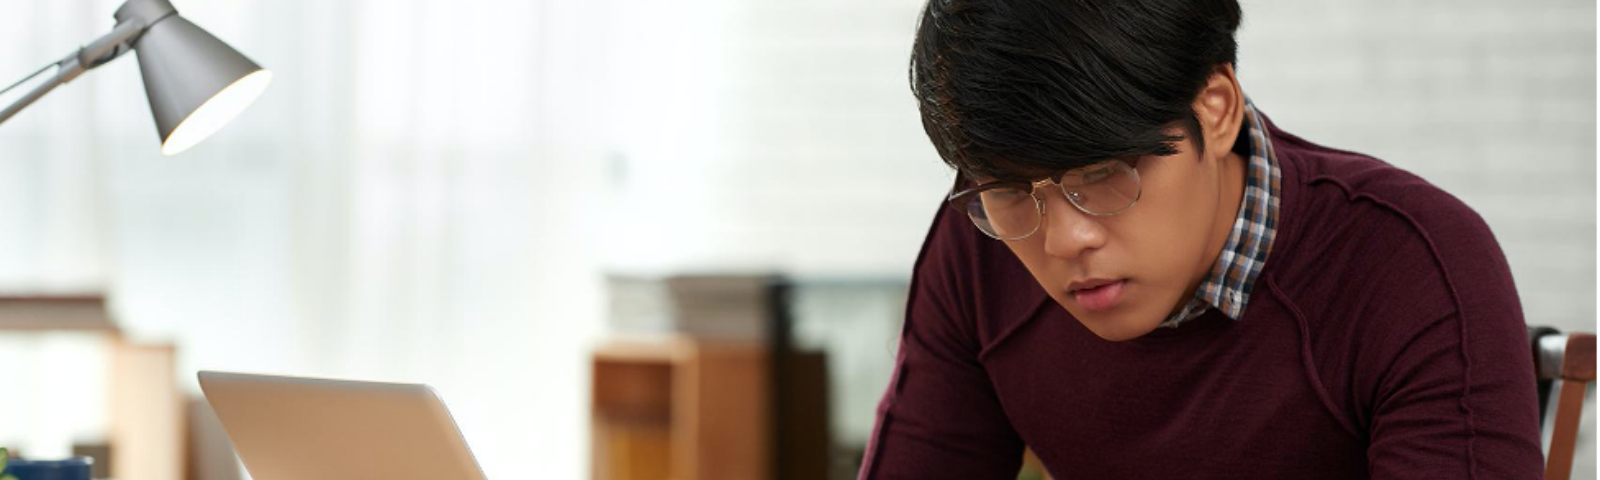 Young engineer wearing glasses and maroon sweater studying at computer